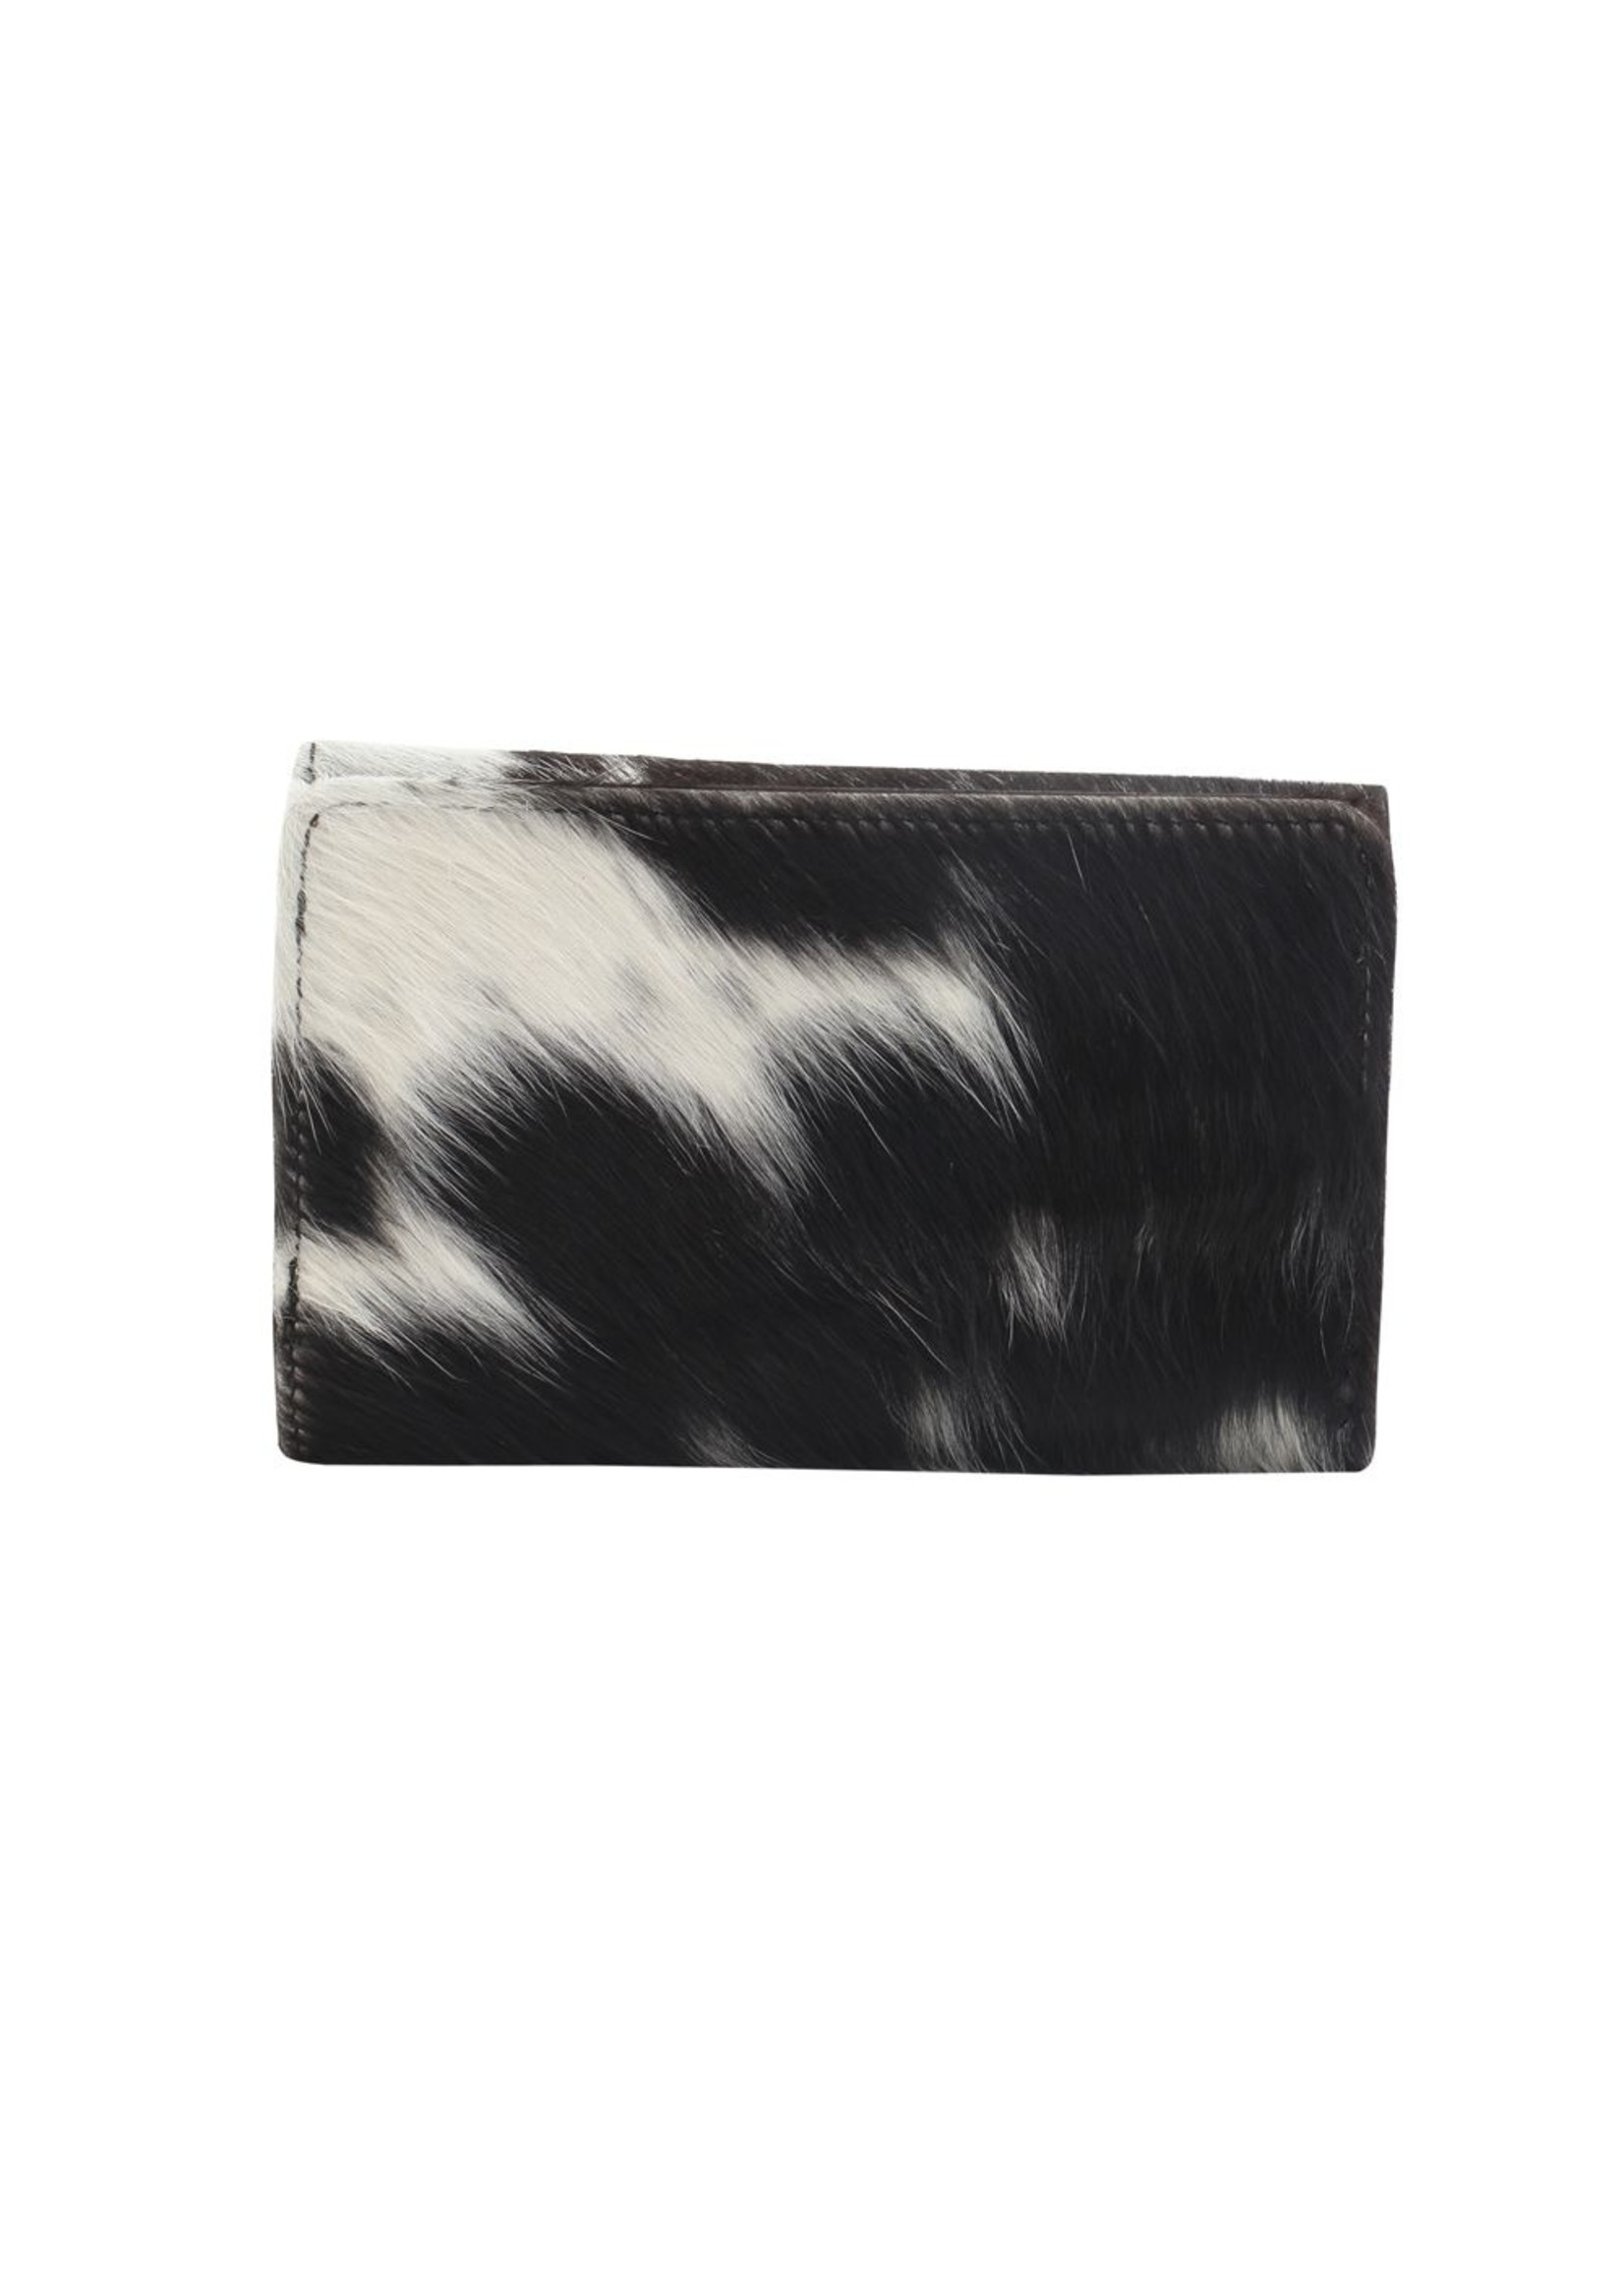 myra bags Fudge Factor Leather & Hairon Wallet